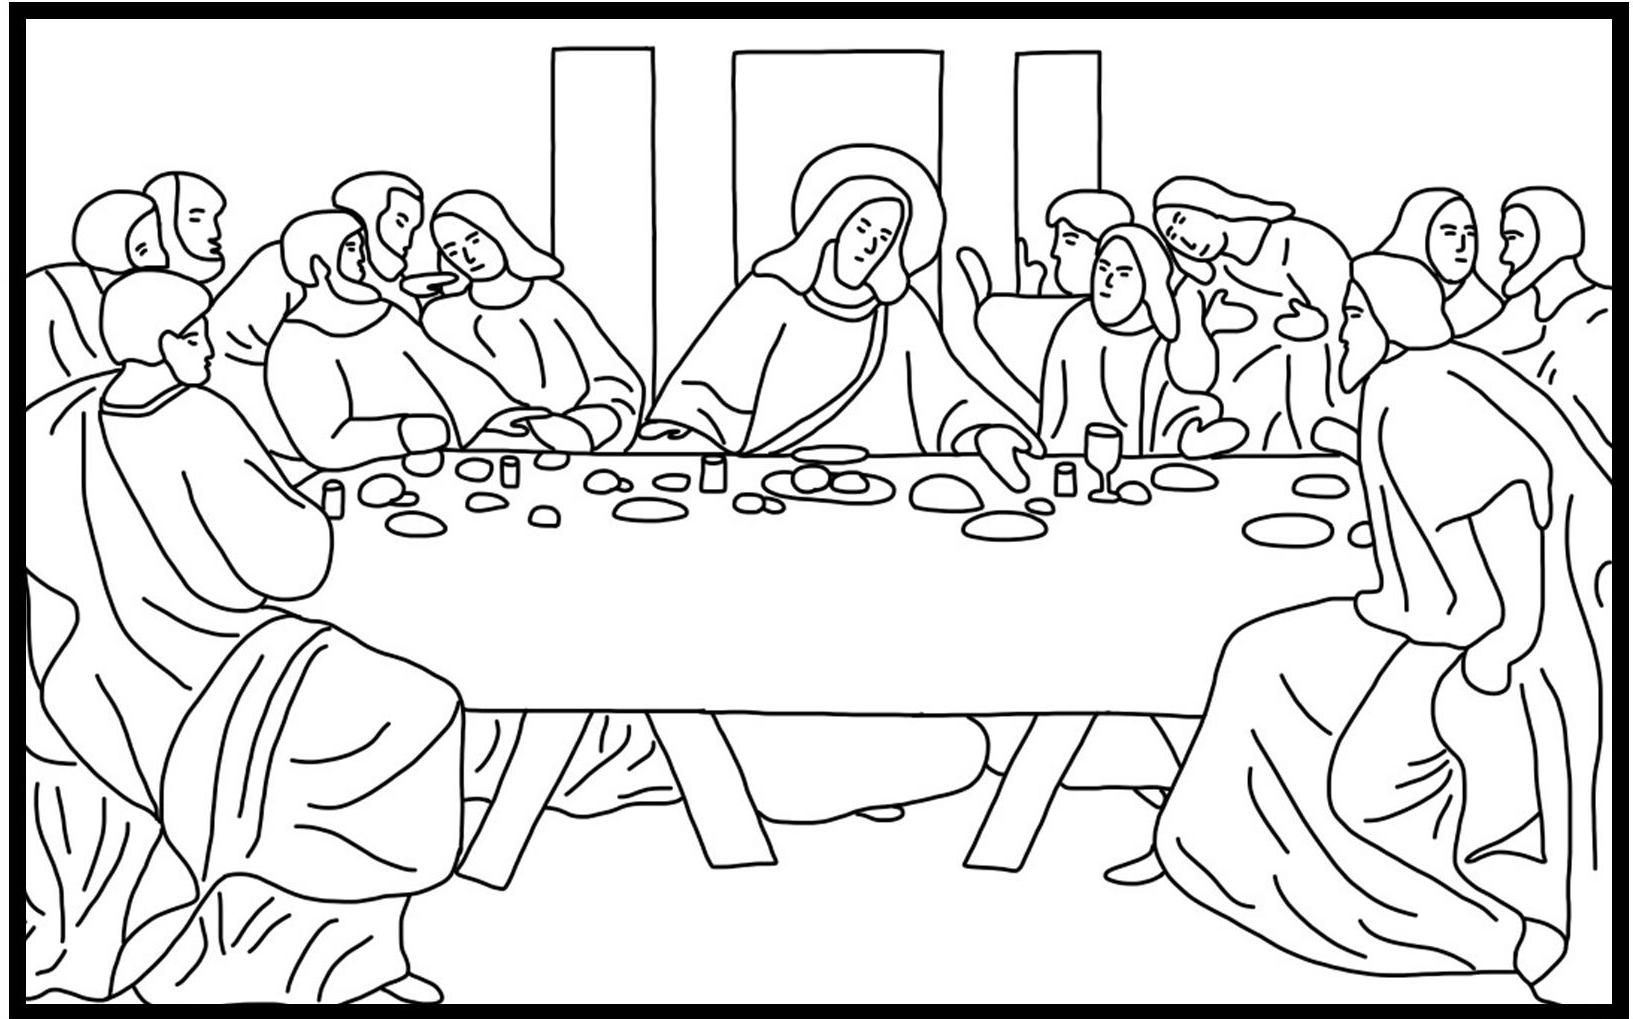 Lent Coloring Pages Coloring Pages Last Supper Coloring Pages